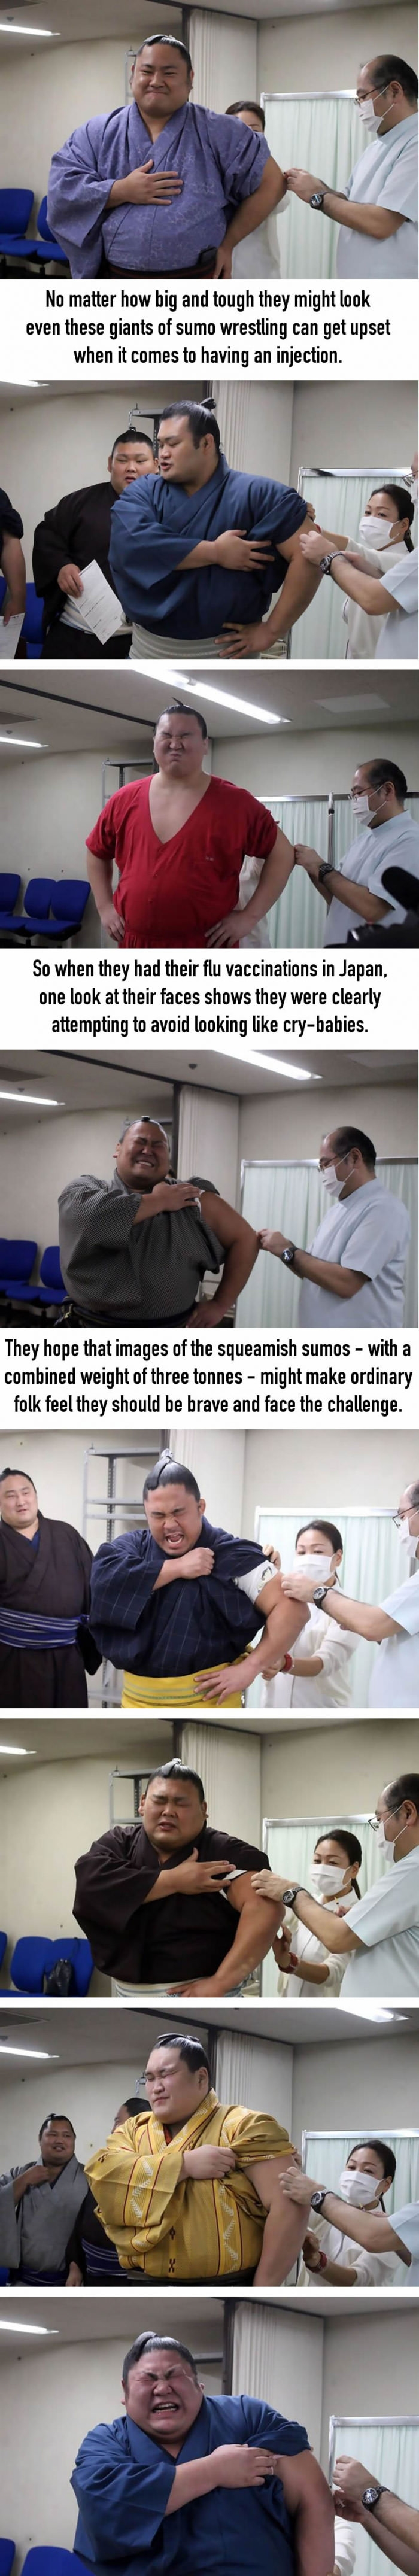 Sumo wrestlers wince in agony while having flu jabs